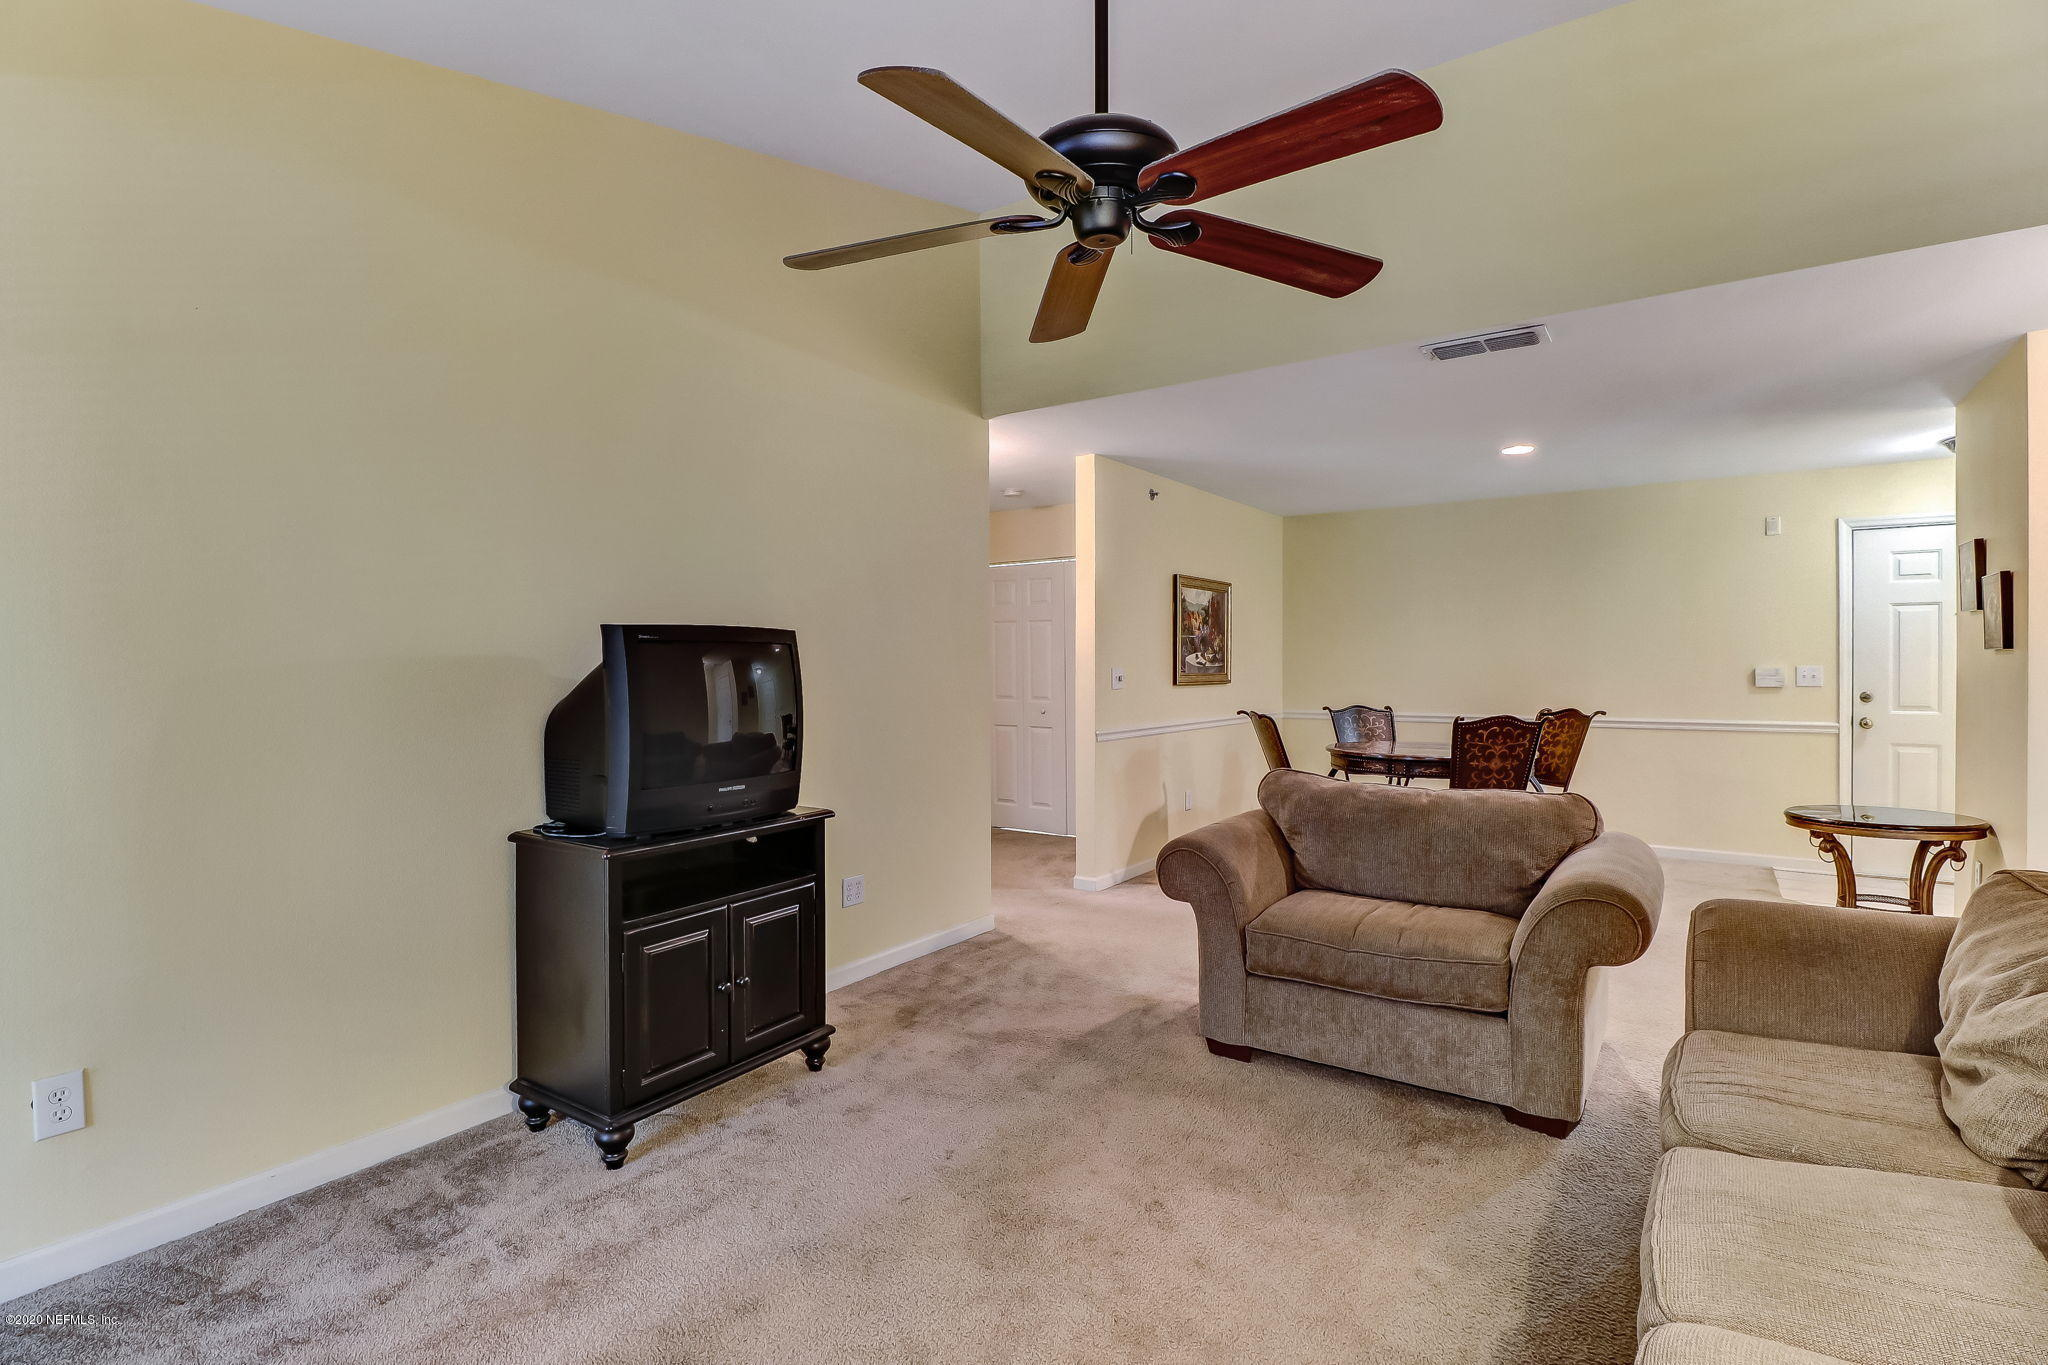 31010 PARADISE CMNS, FERNANDINA BEACH, FLORIDA 32034, 2 Bedrooms Bedrooms, ,2 BathroomsBathrooms,Residential,For sale,PARADISE CMNS,1055496